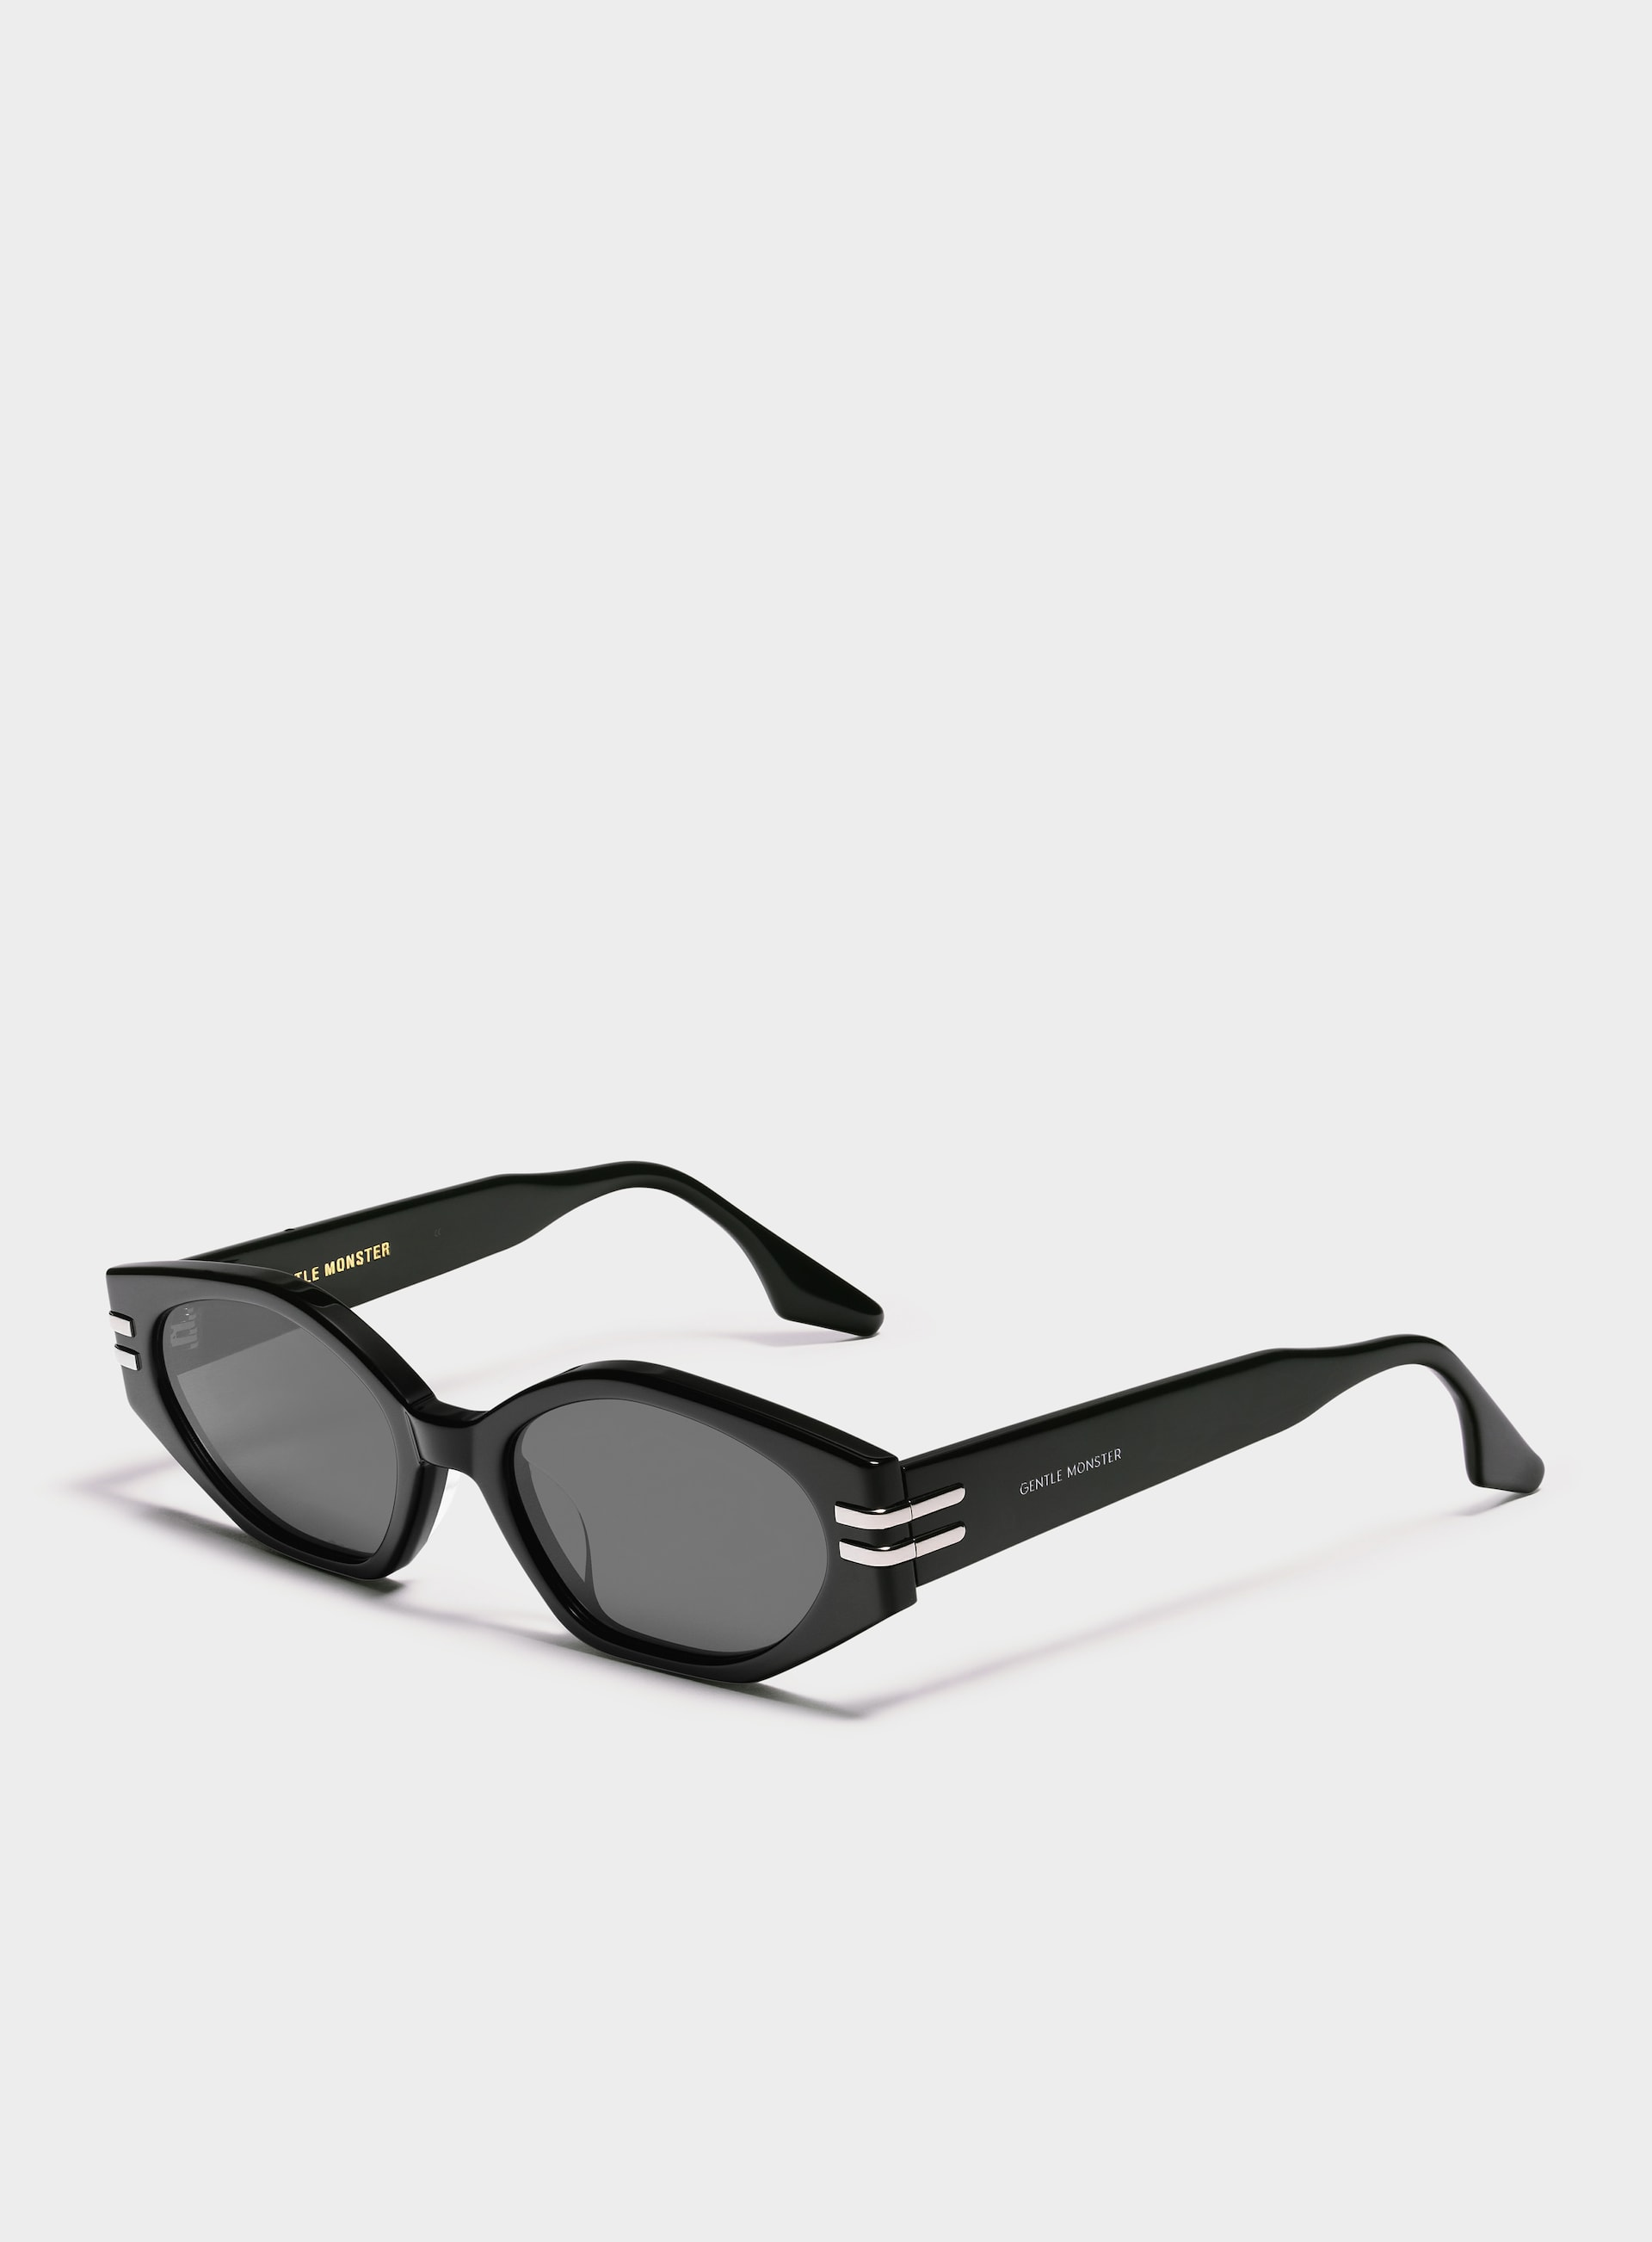 Ghost 01 by Gentle Monster, available on detail.php for $320 Hailey Baldwin Sunglasses Exact Product